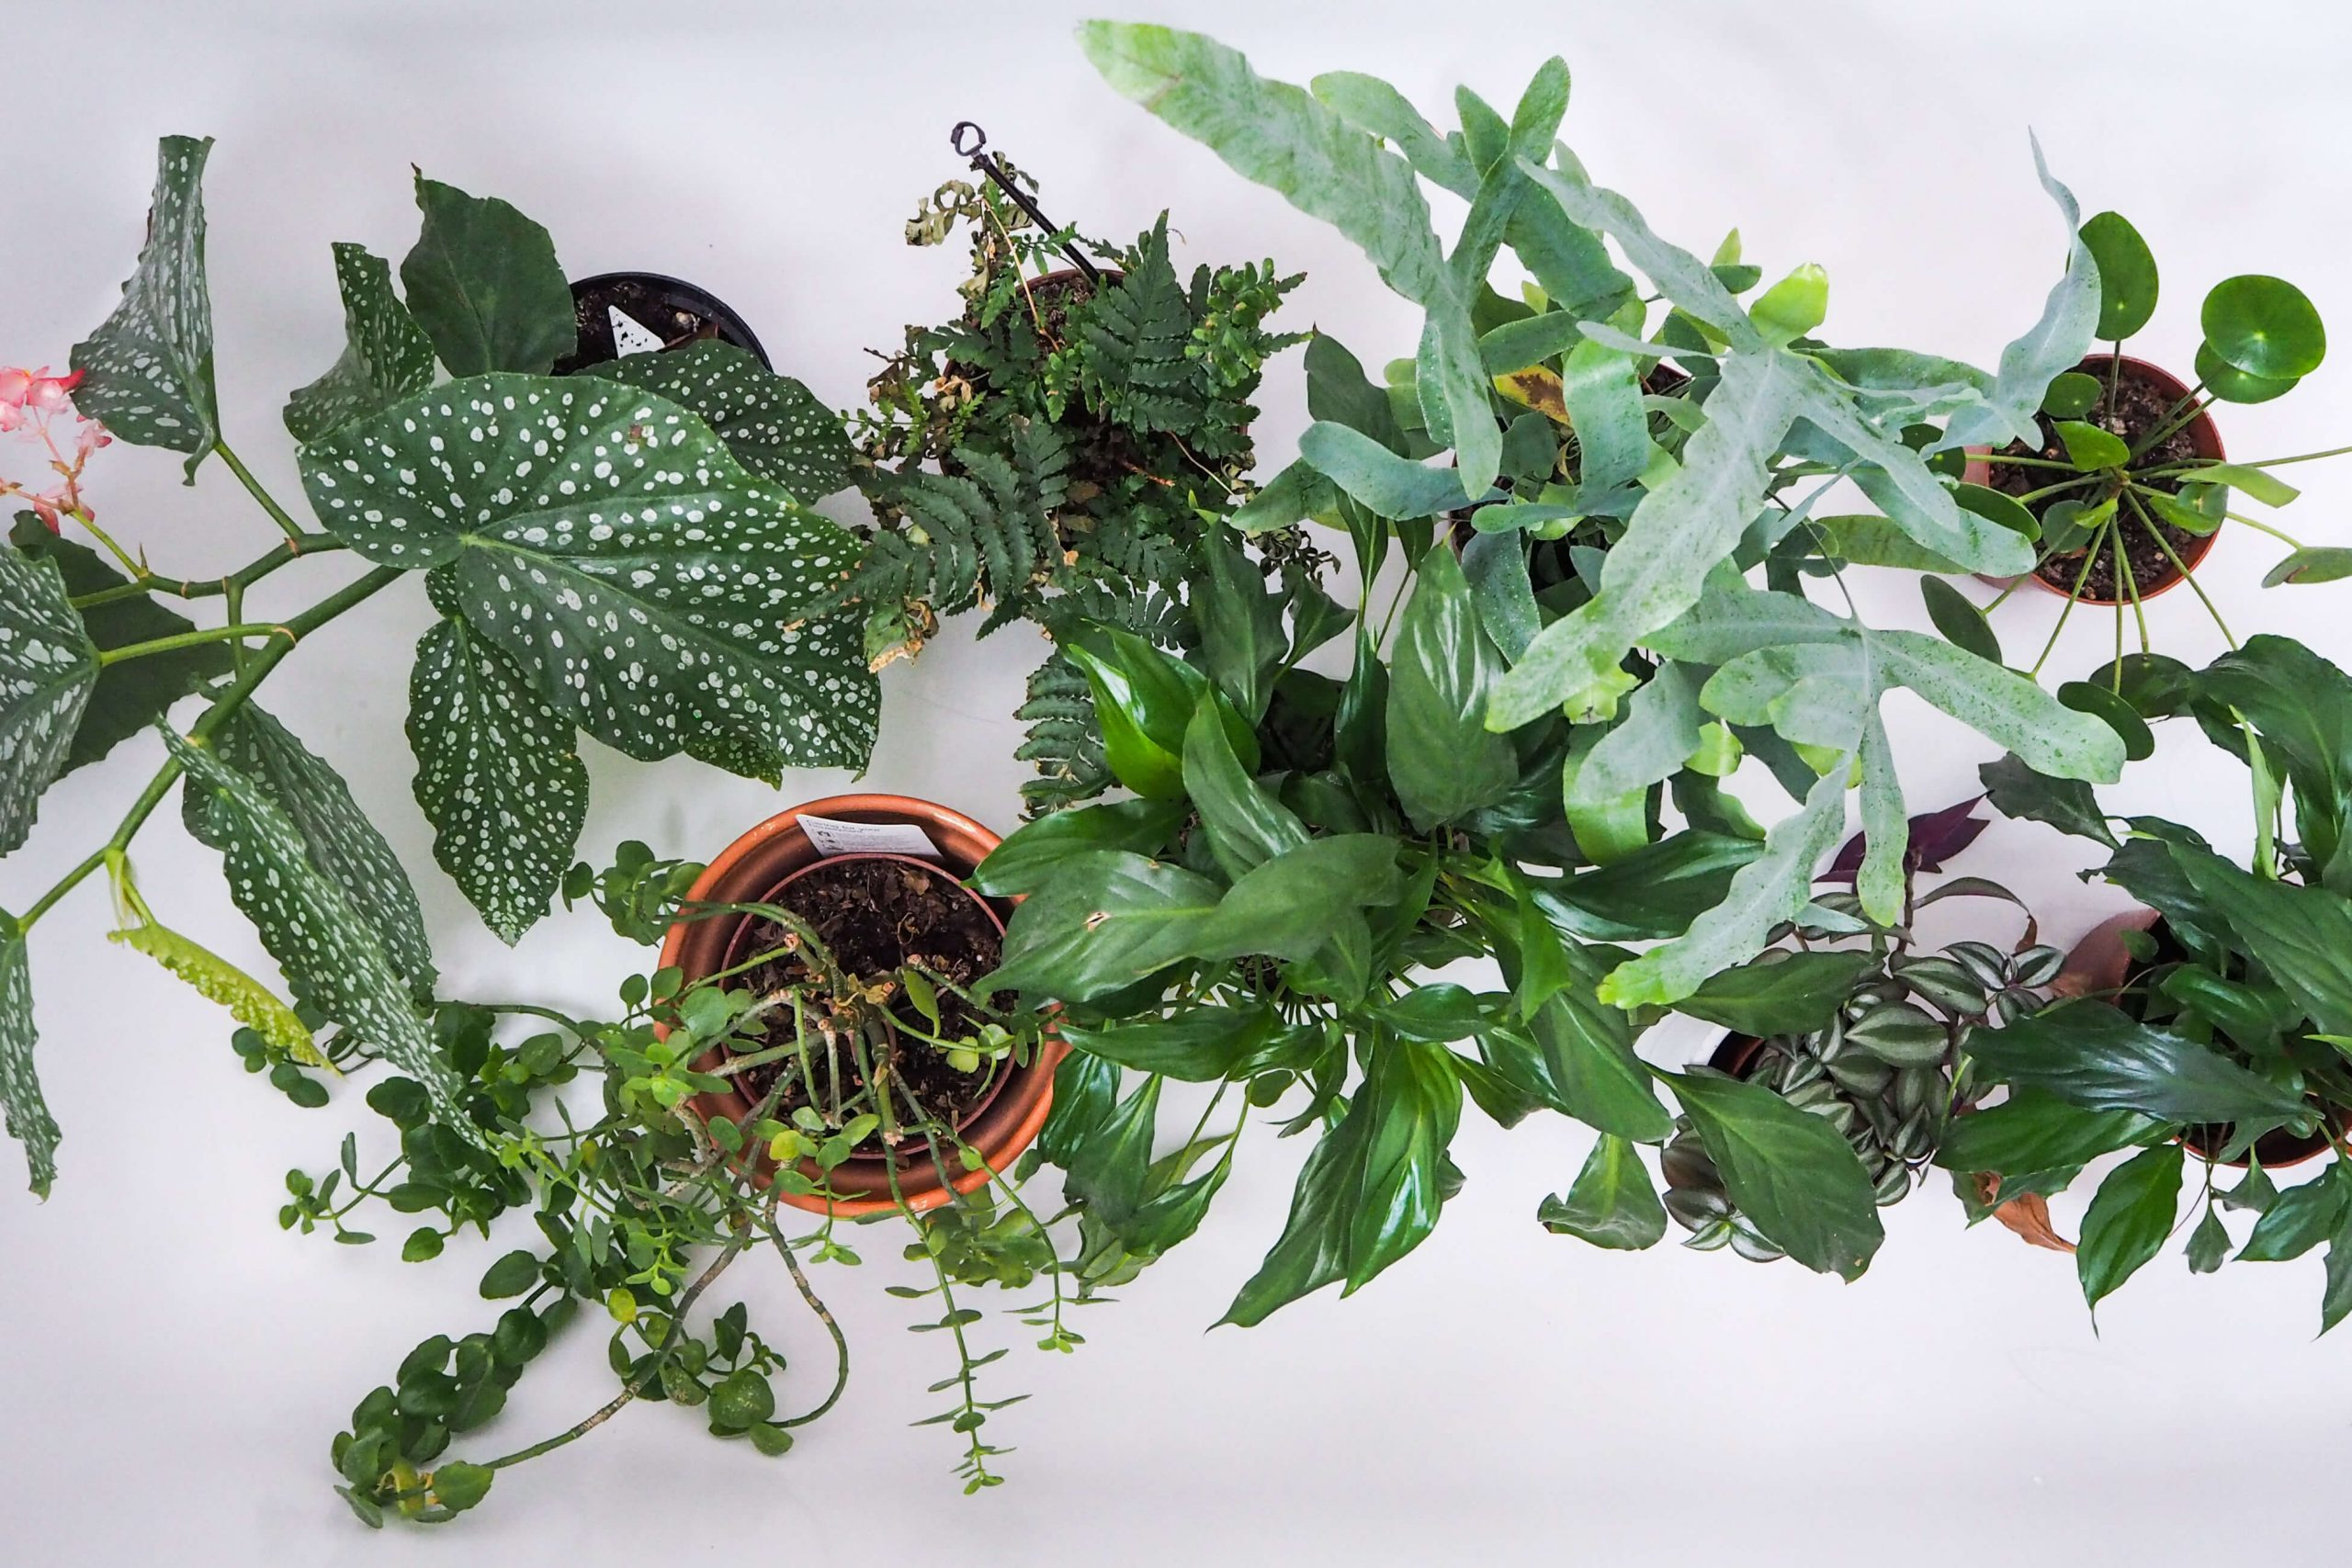 FIVE easy care houseplants to add to your home